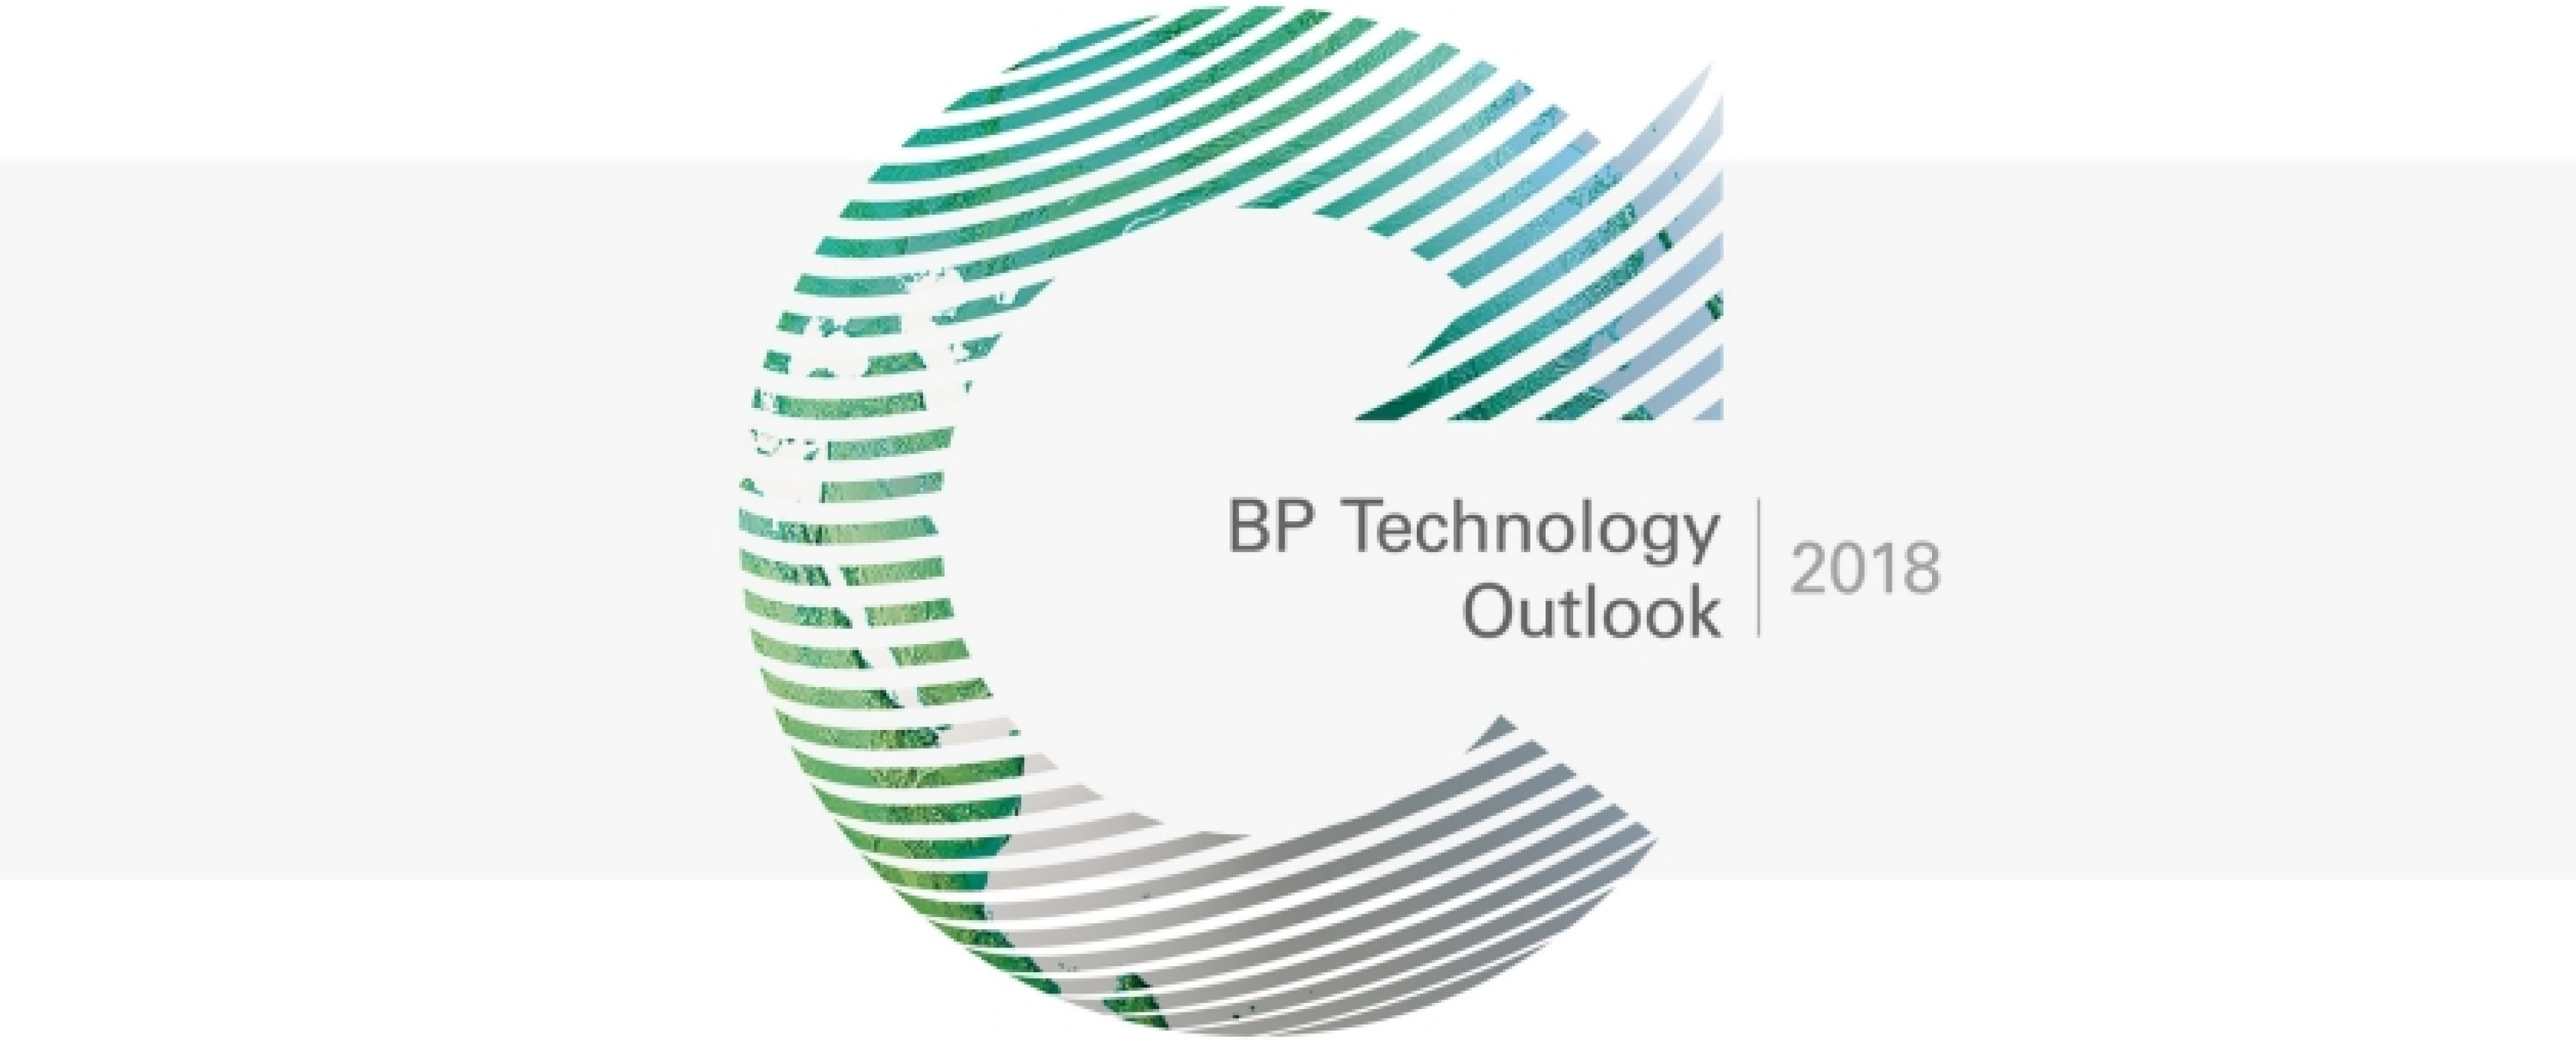 BP Technology Outlook 2018.jpg